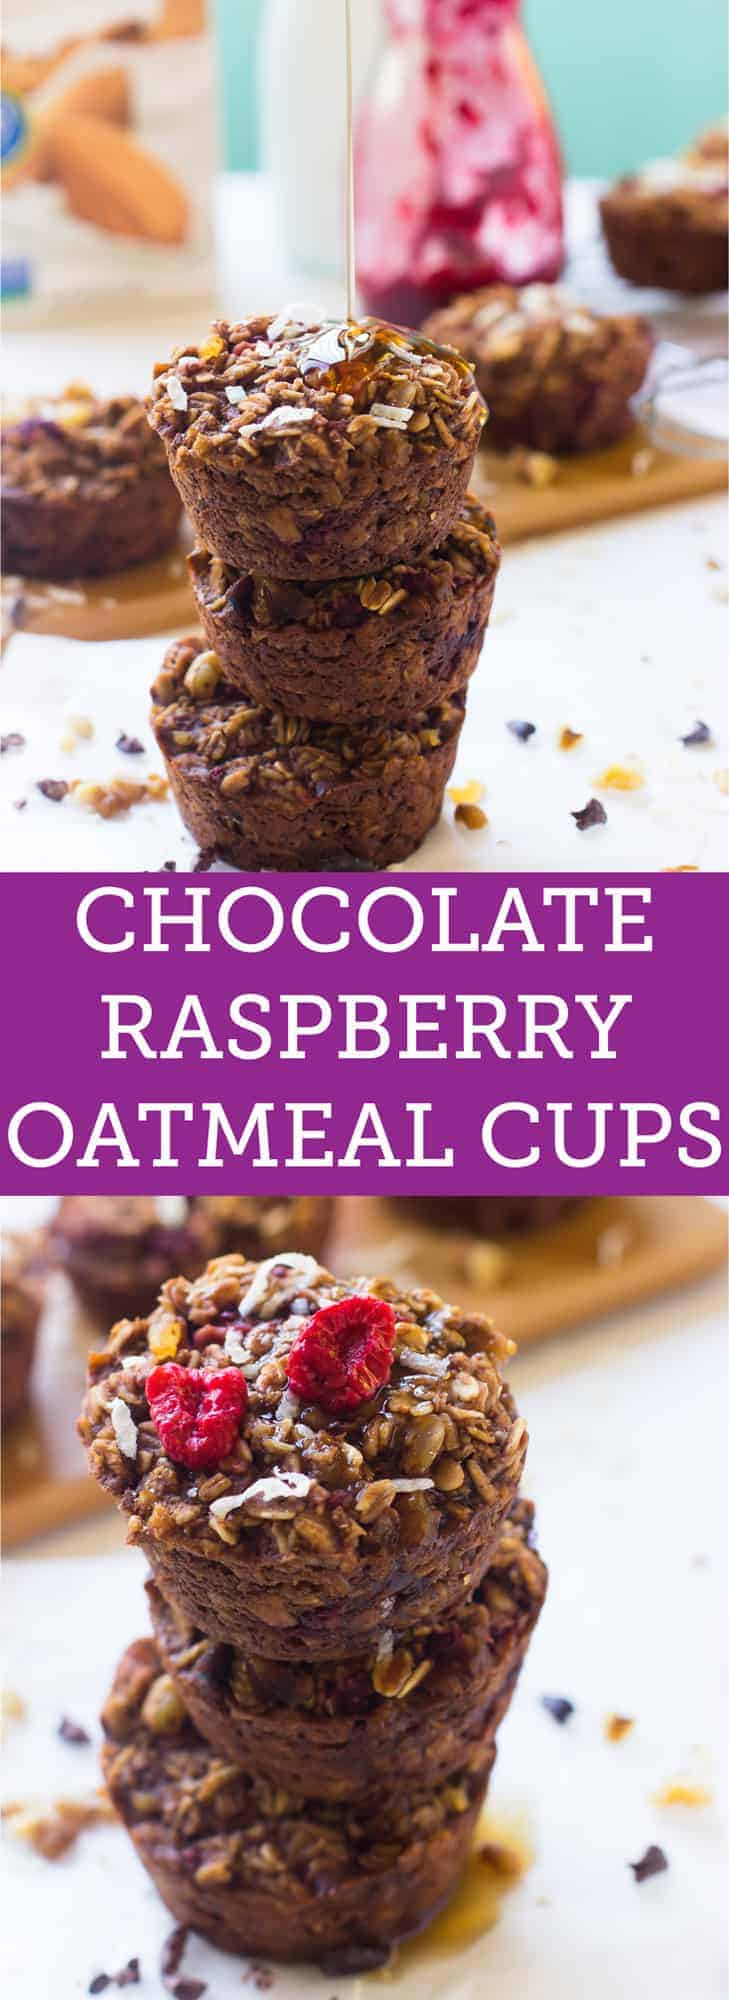 These Chocolate Raspberry Baked Oatmeal Cups are perfect for busy mornings! They taste look chewy delicious oatmeal cookies and are gluten free!